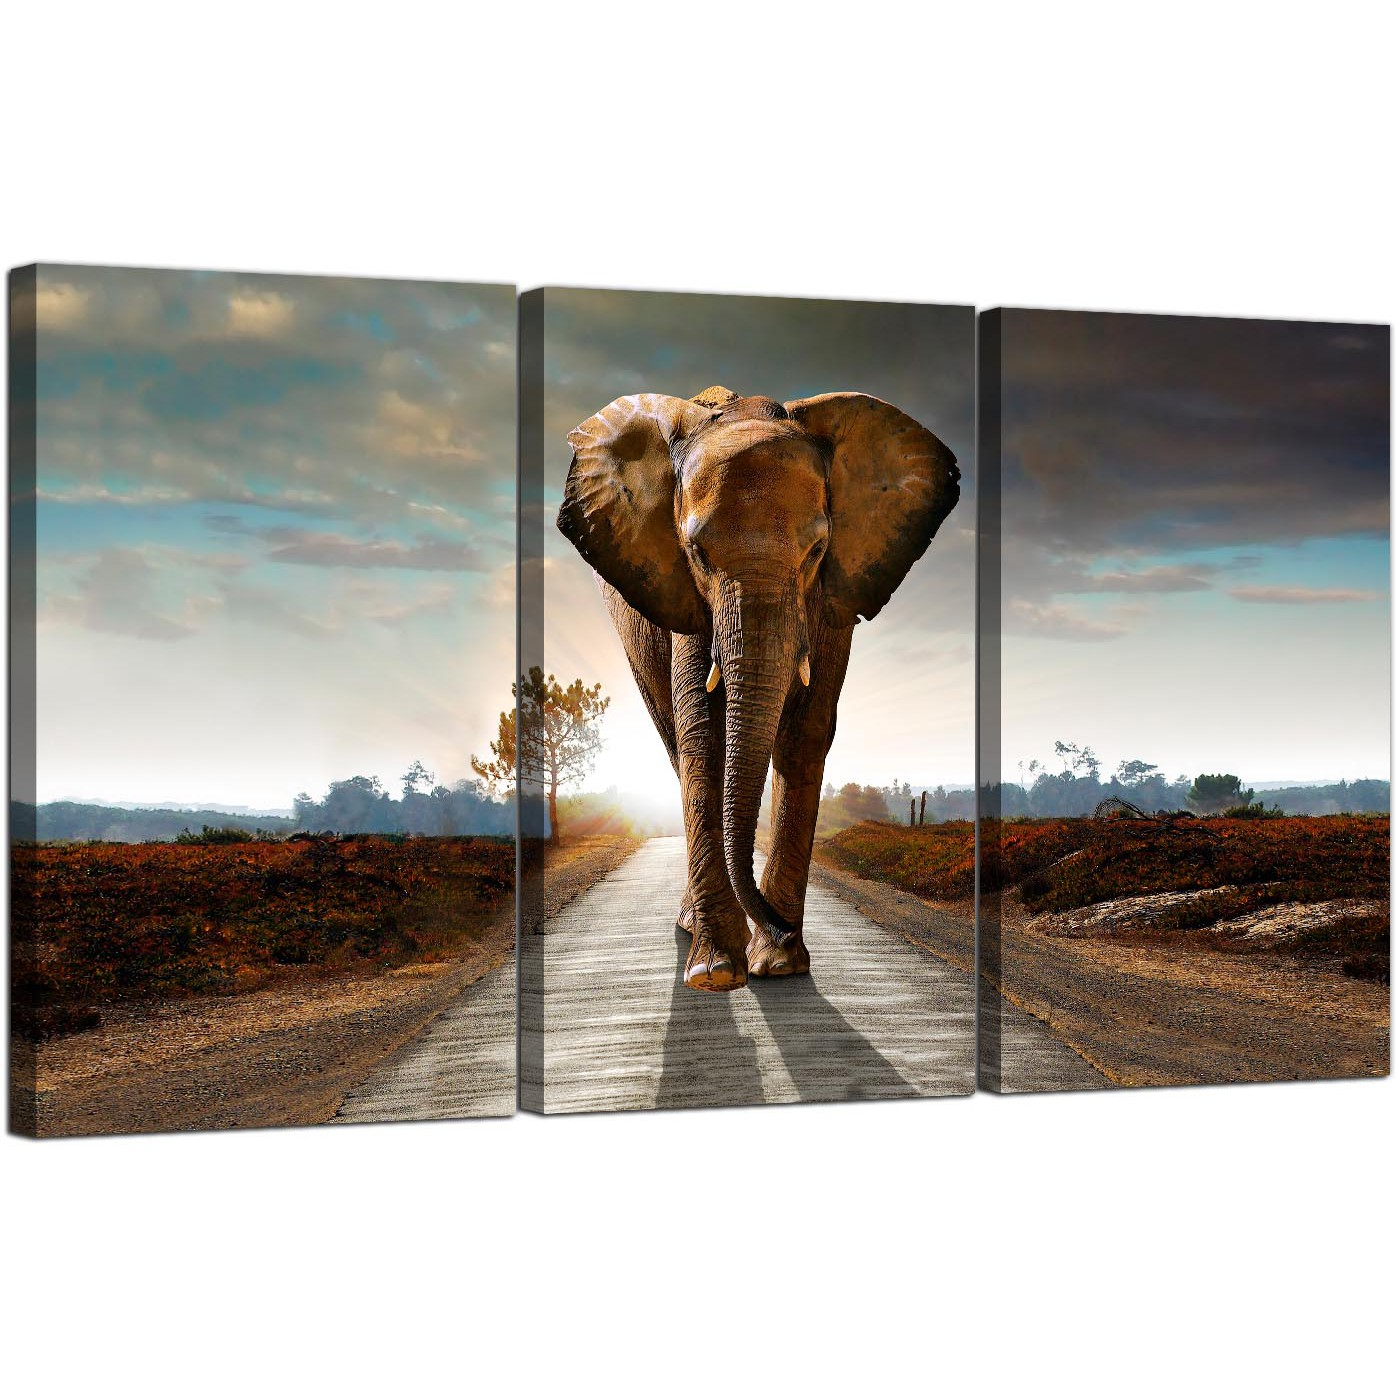 Large African Elephant Canvas Prints 3 Part for your Hallway : 3 panel elephant canvas prints uk study 3209 from wallfillers.co.uk size 1400 x 1400 jpeg 337kB